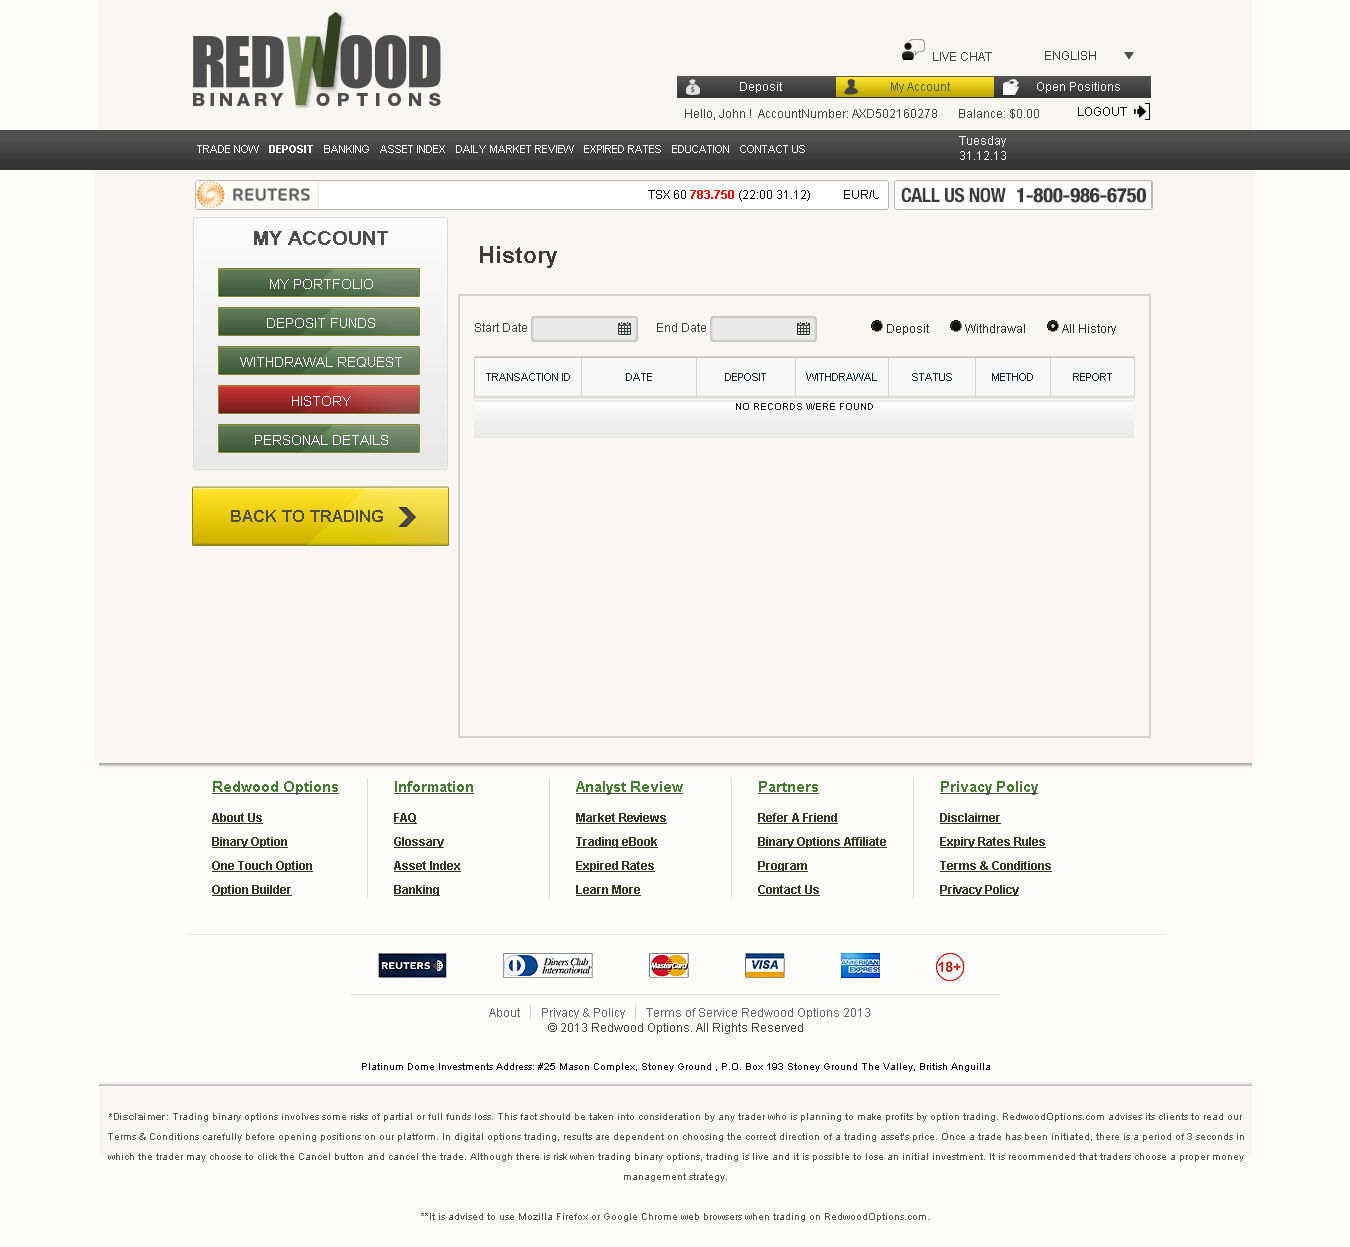 Redwood binary options demo account